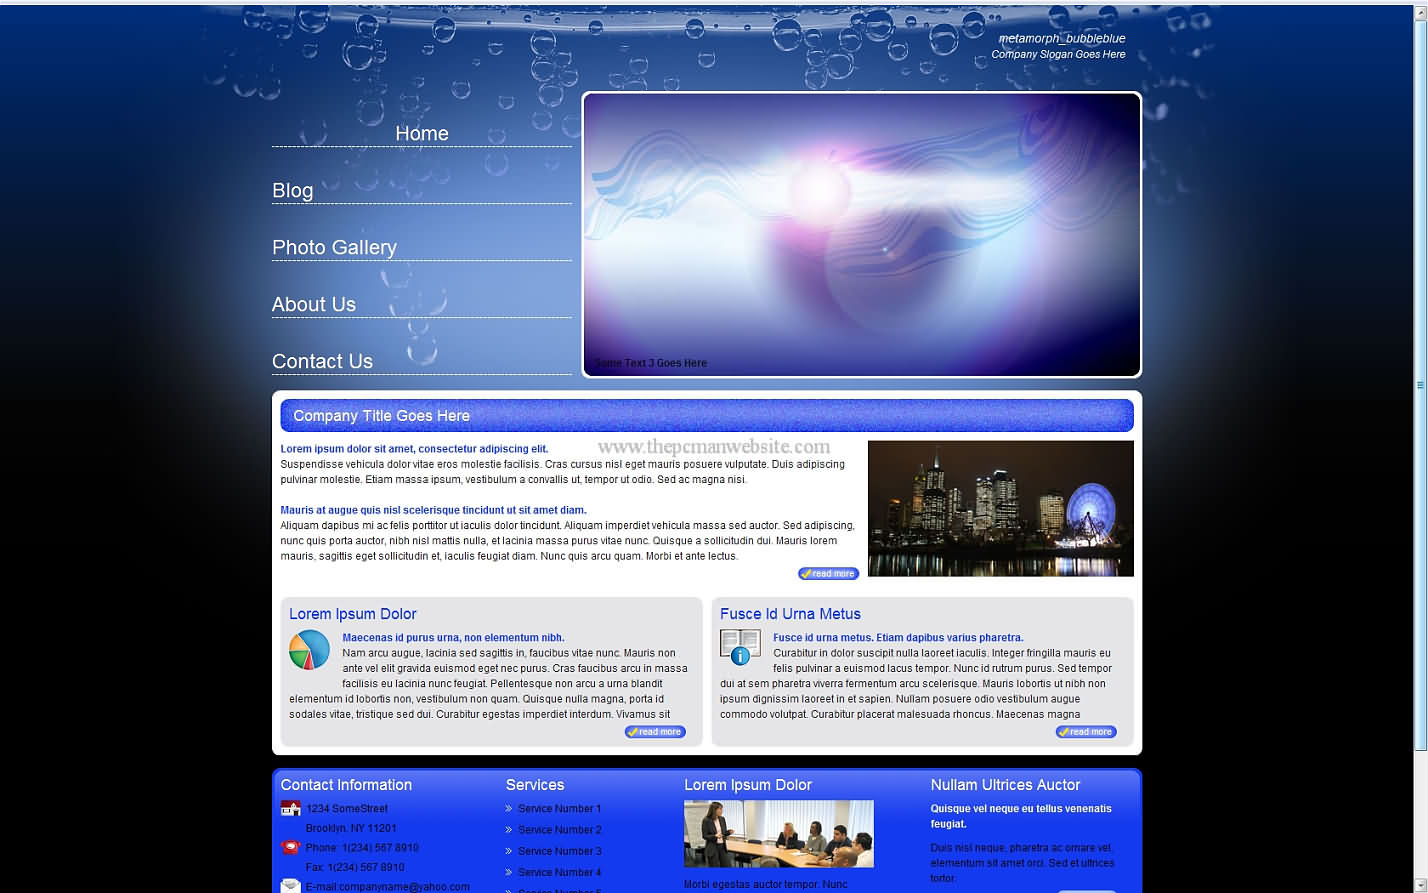 Metamorph Bubbleblue css template